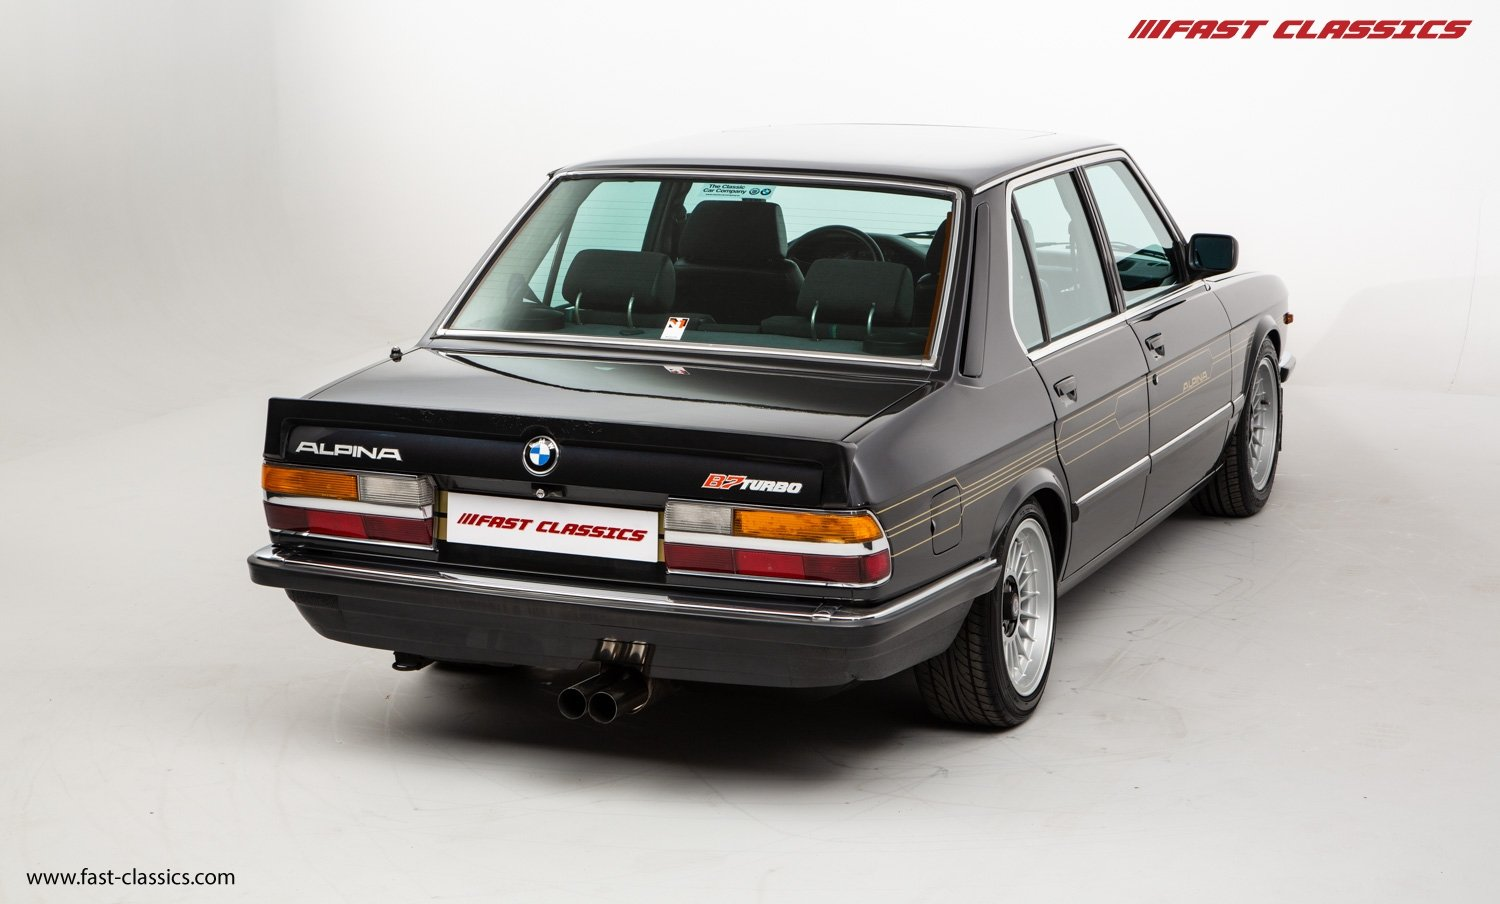 1986 ALPINA B7 TURBO/1 // 1 OF 42 HIGH POWER CATALYST CARS  For Sale (picture 9 of 24)